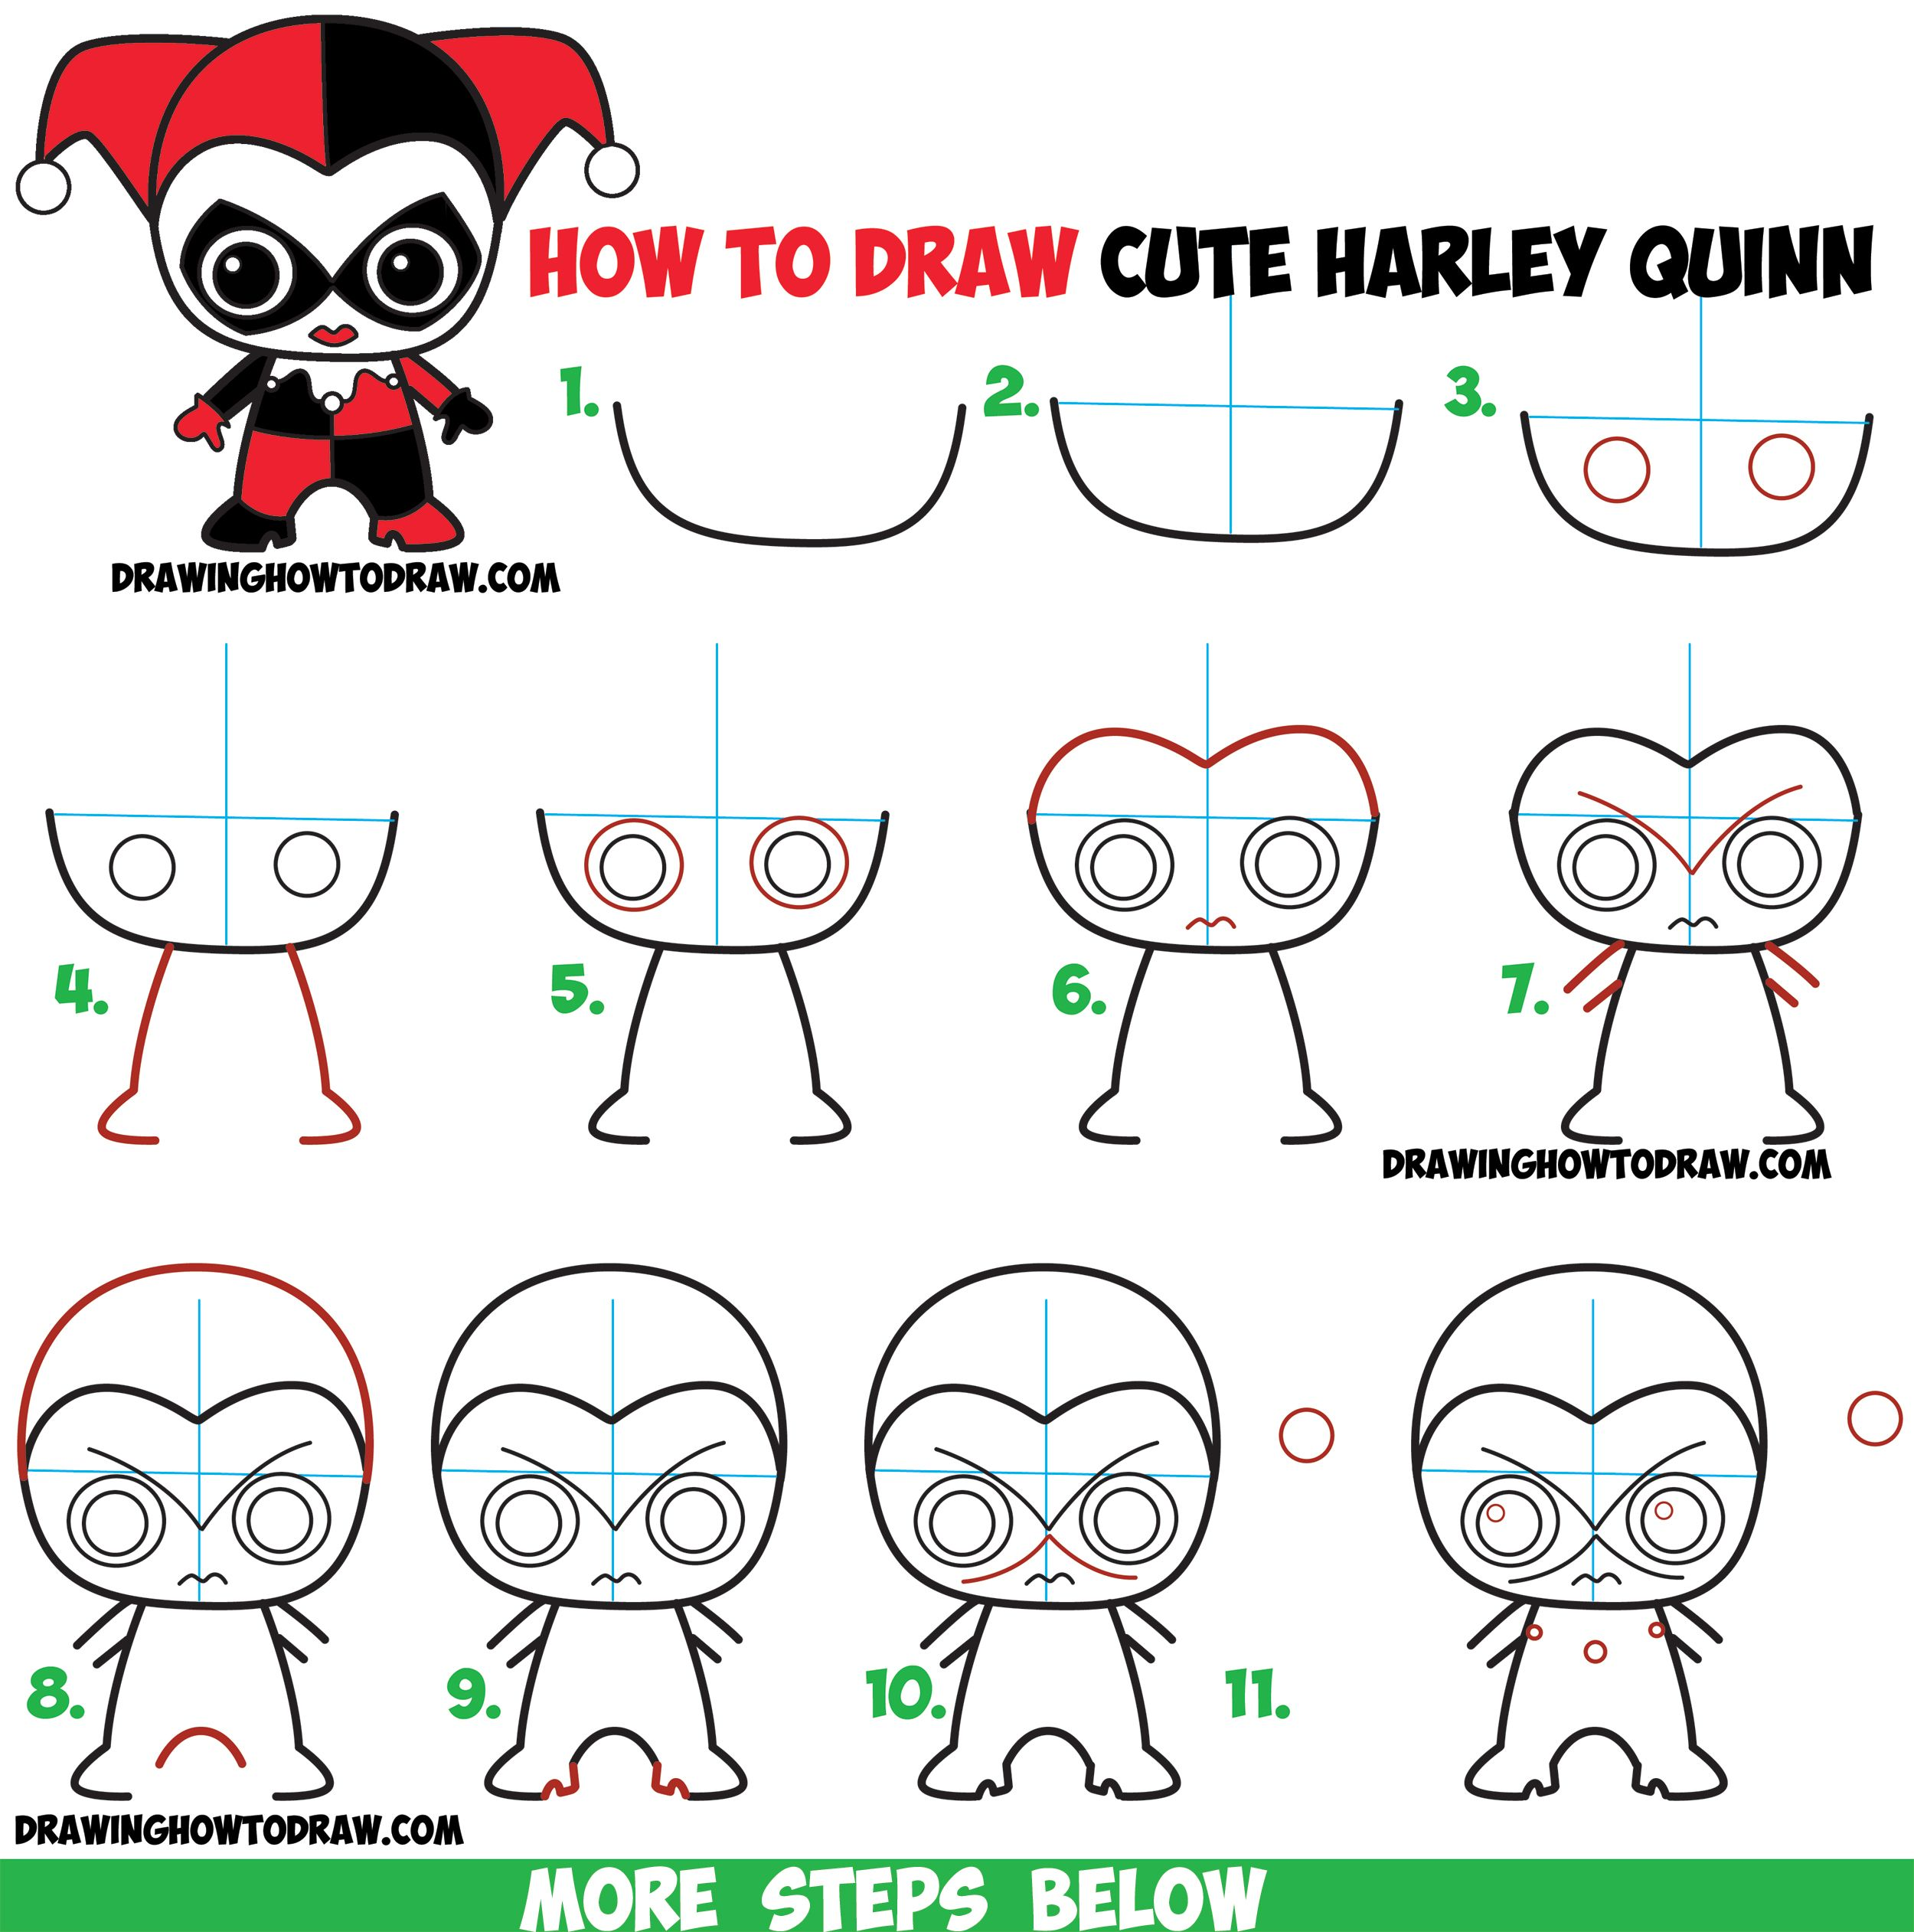 How To Draw Cute Chibi Harley Quinn From DC Comics In Easy